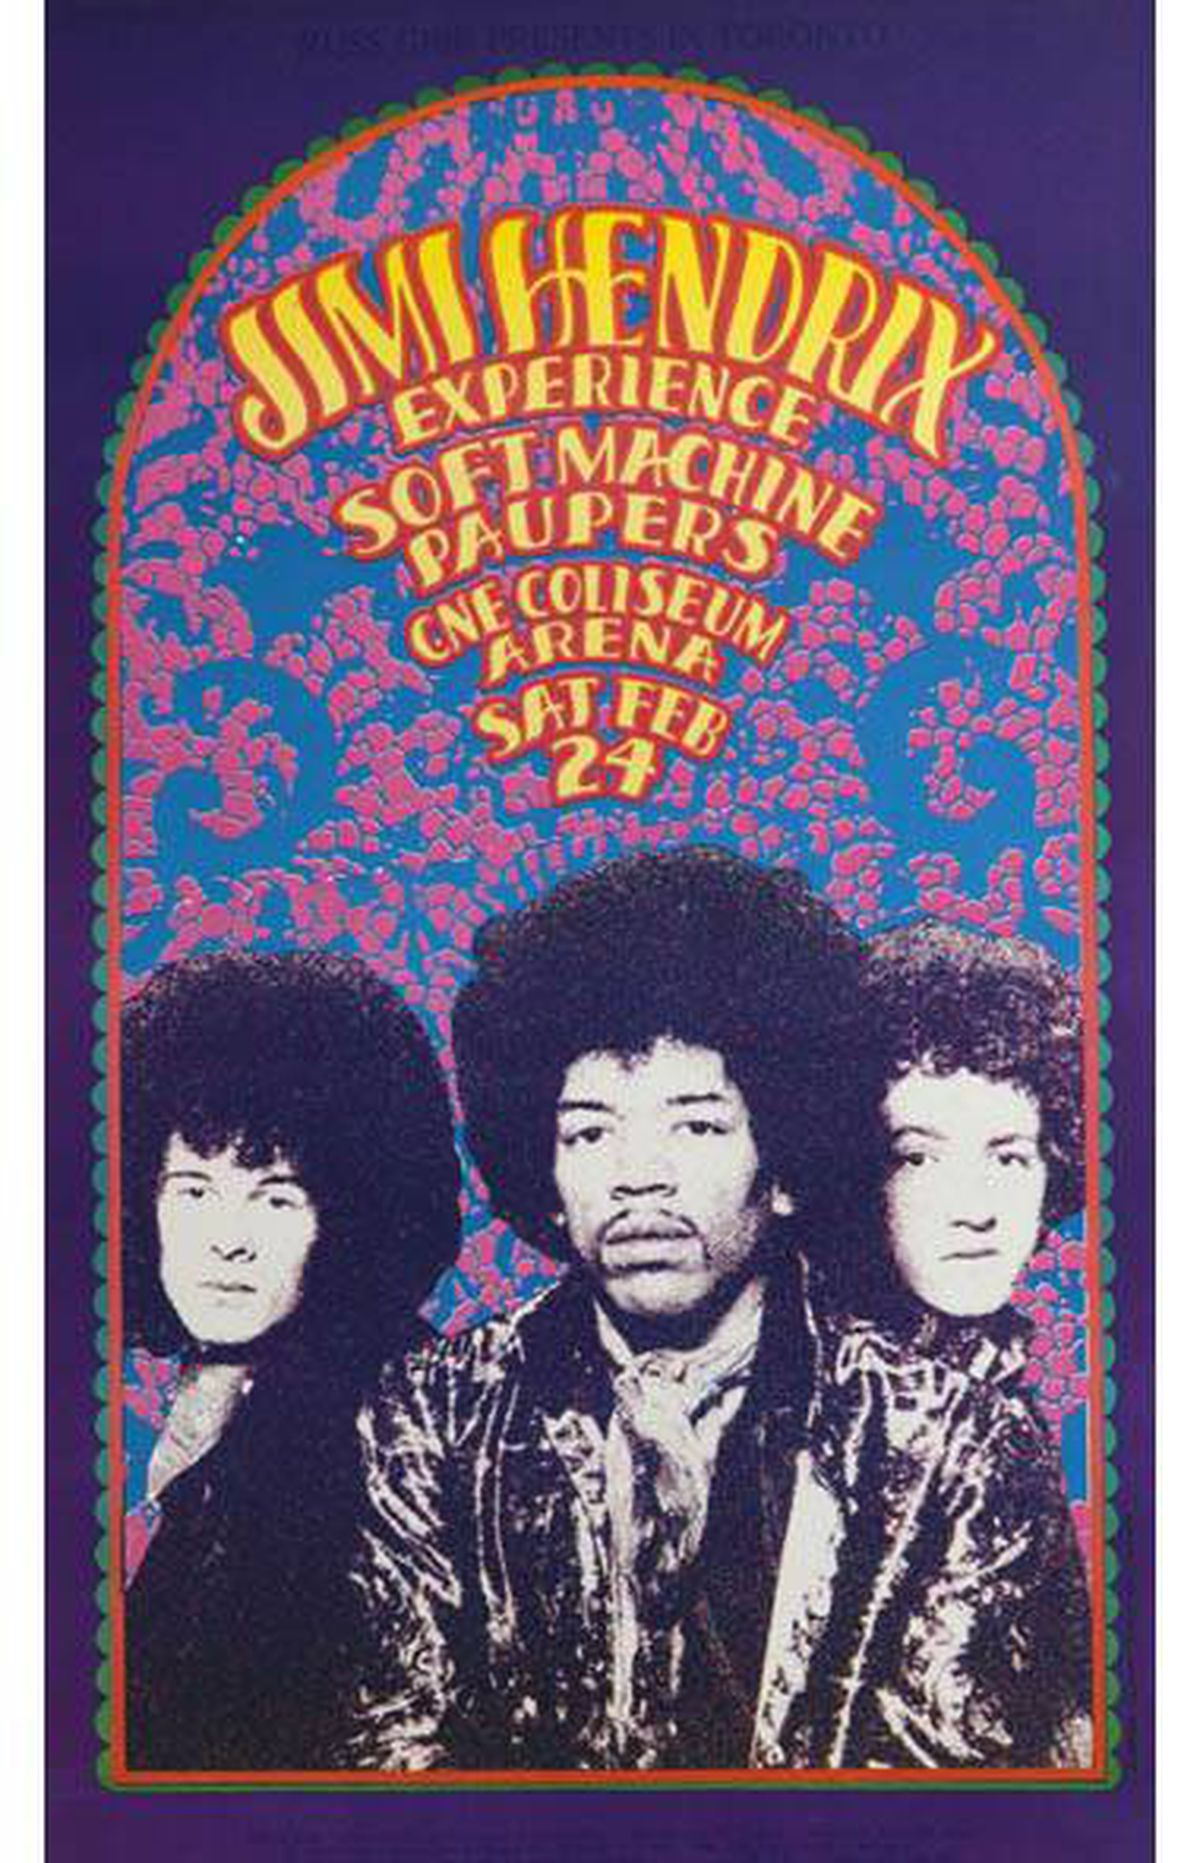 Poster for the Jimi Hendrix Experience at Toronto's CNE February 24, 1968 by artist Gary Grimshaw. Part of a collection of rare and valuable posters gifted to the AGO, photographed on February 18, 2011.